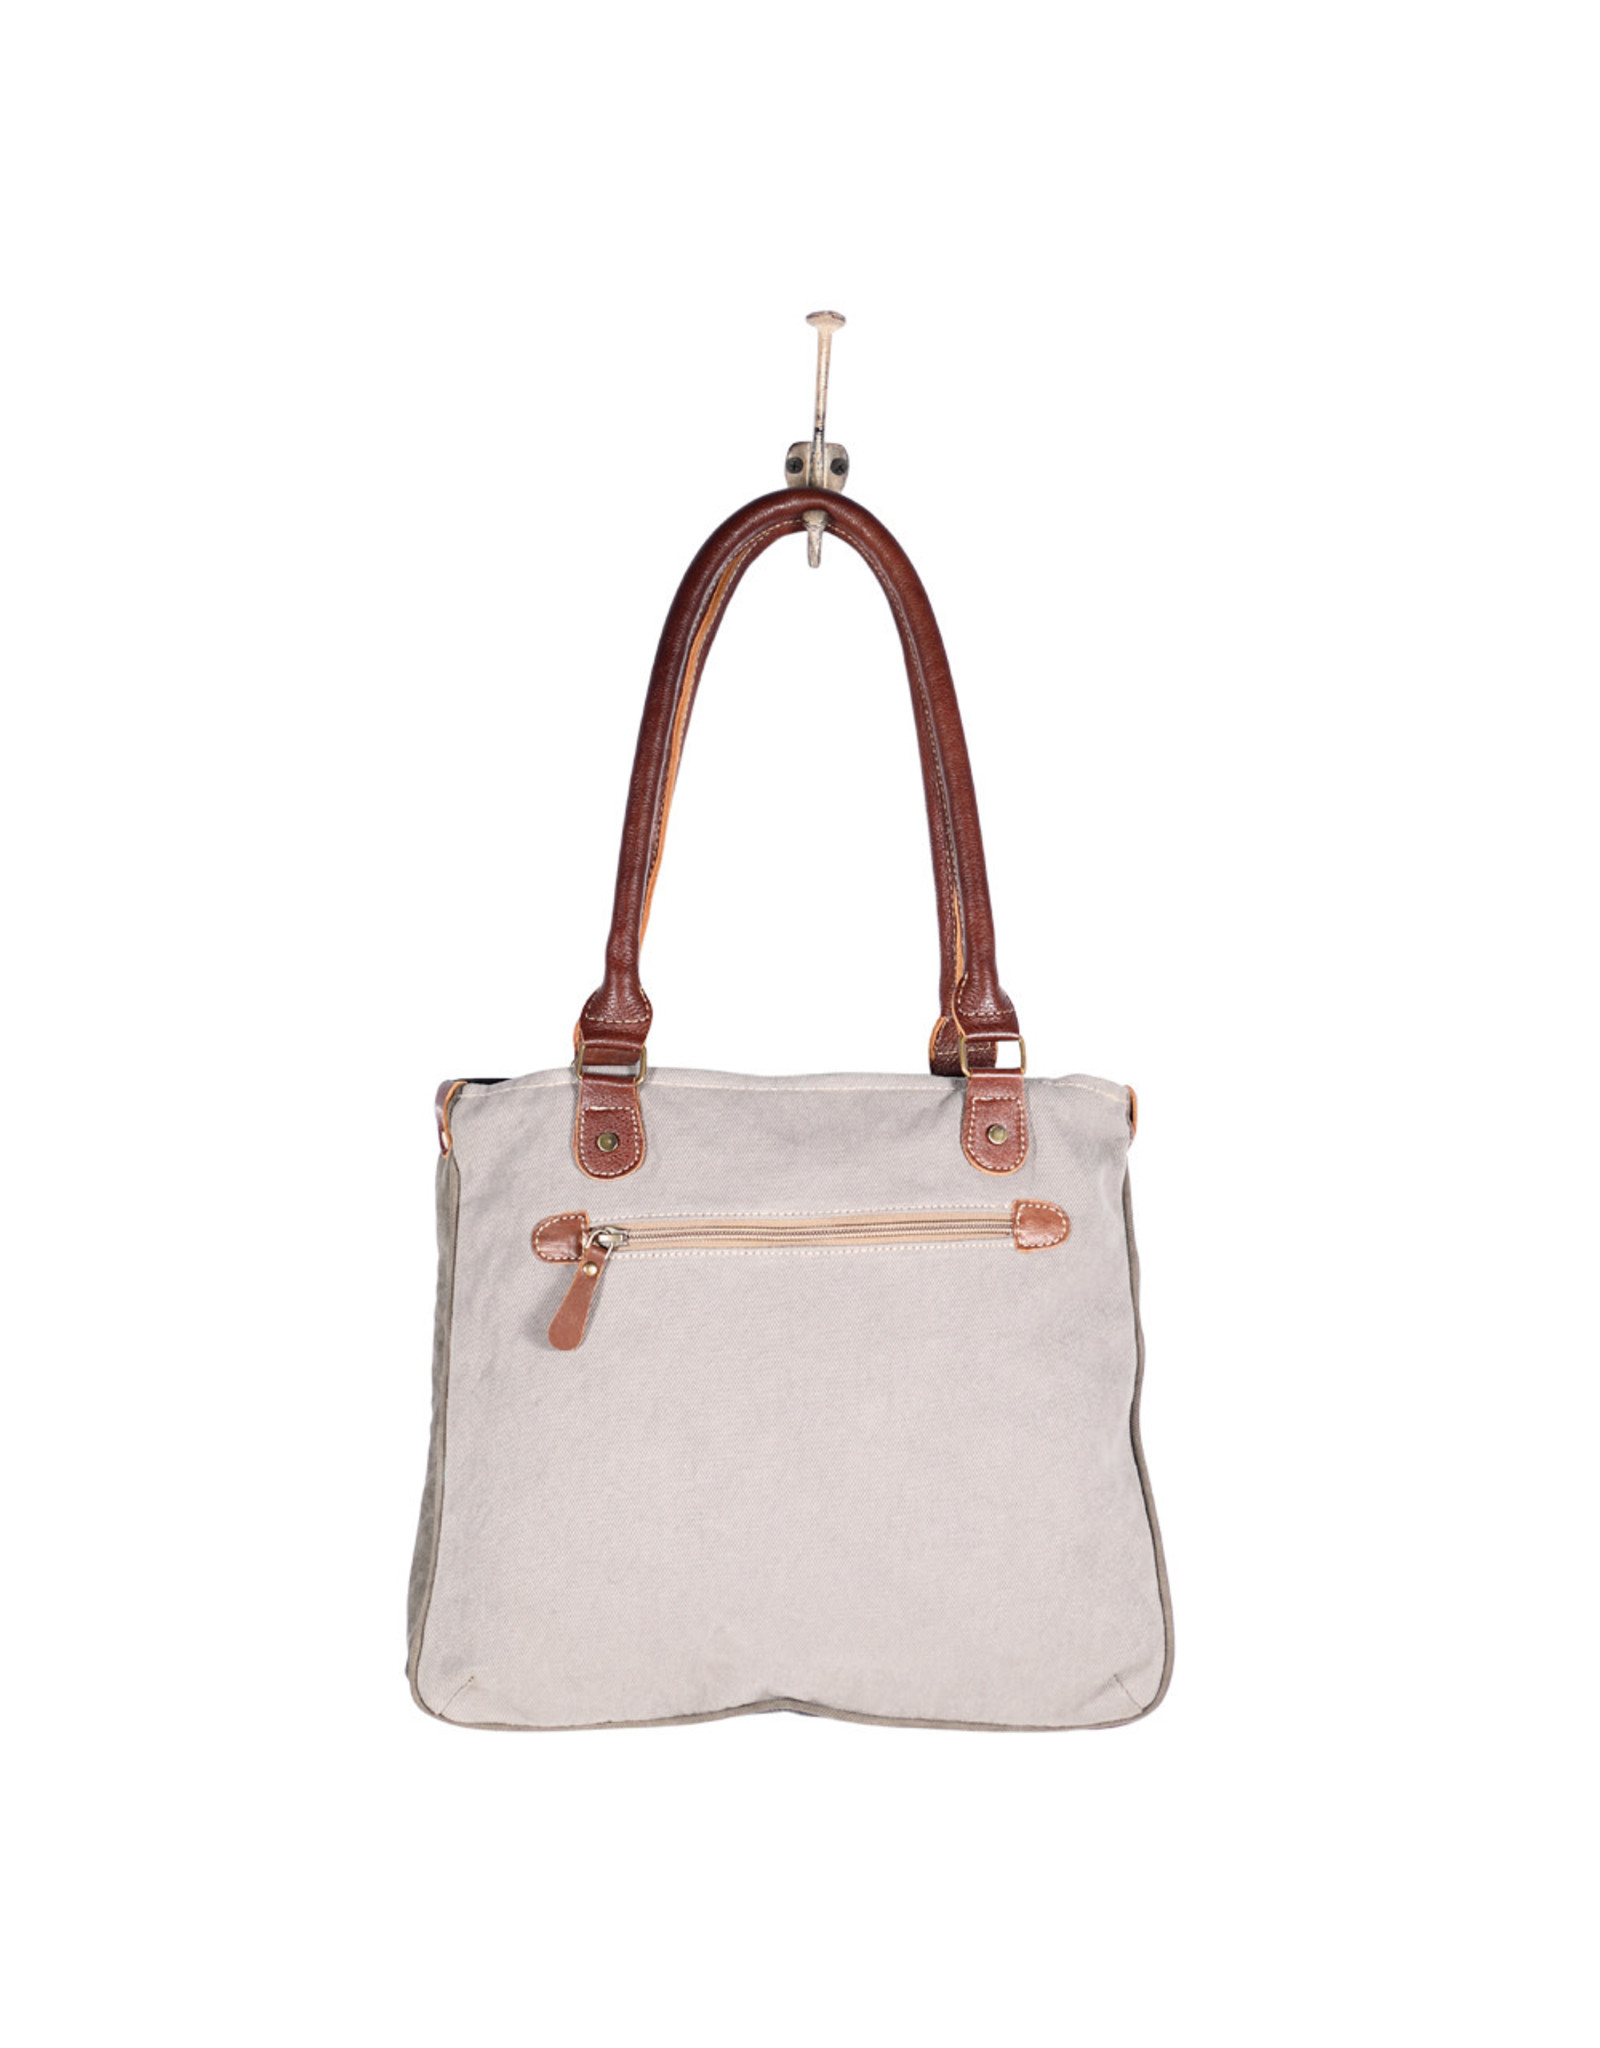 Myra Bags S-1888 Unwind Small Bag